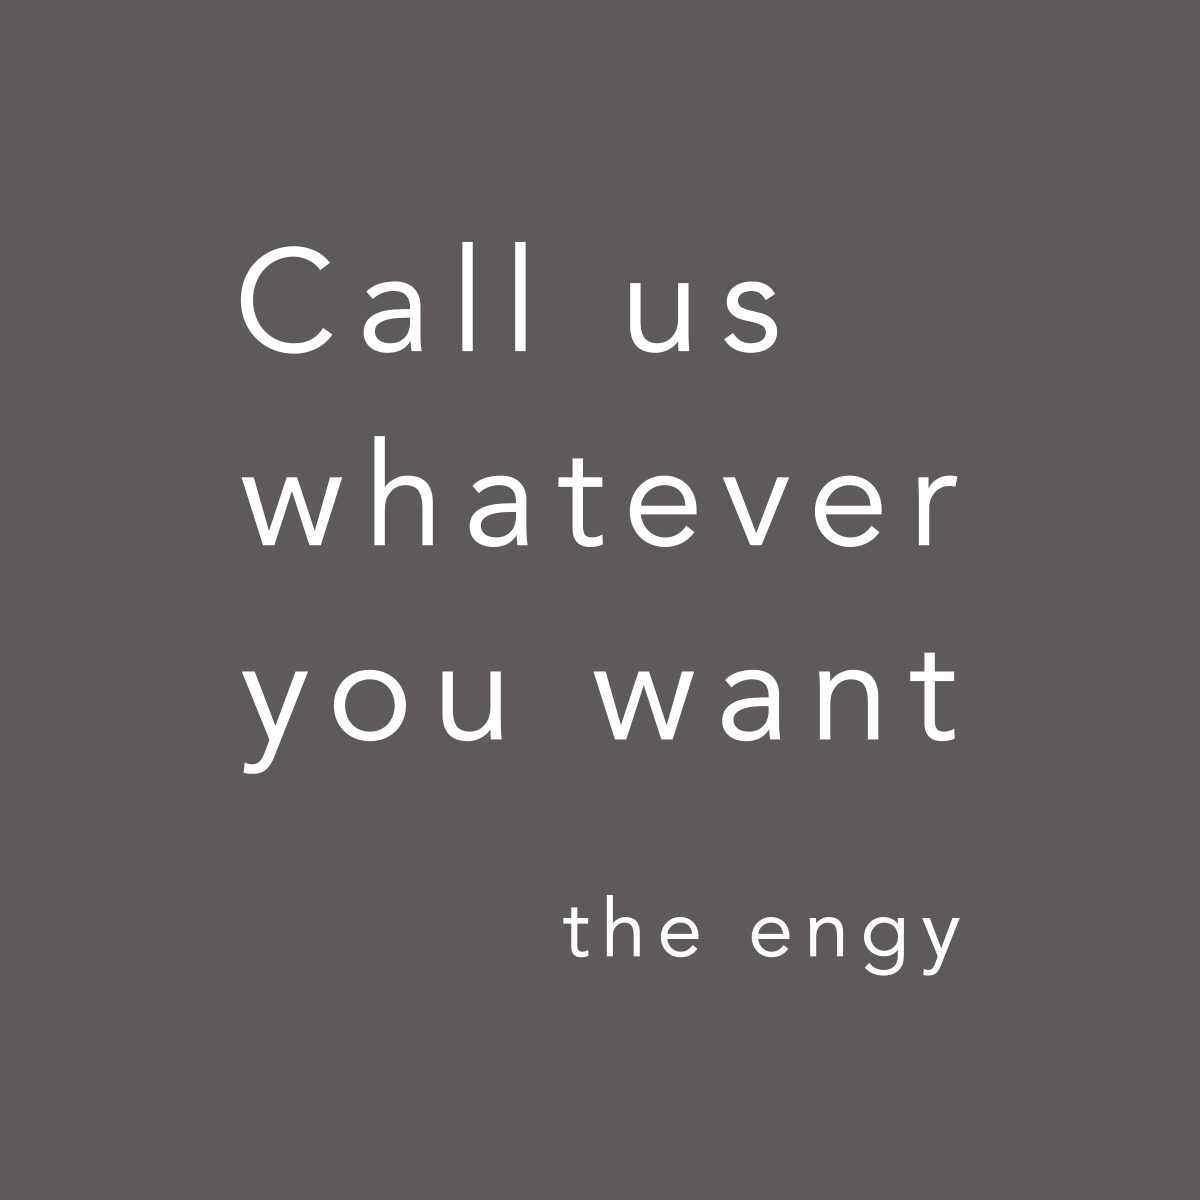 the engy_Call us whatever you want